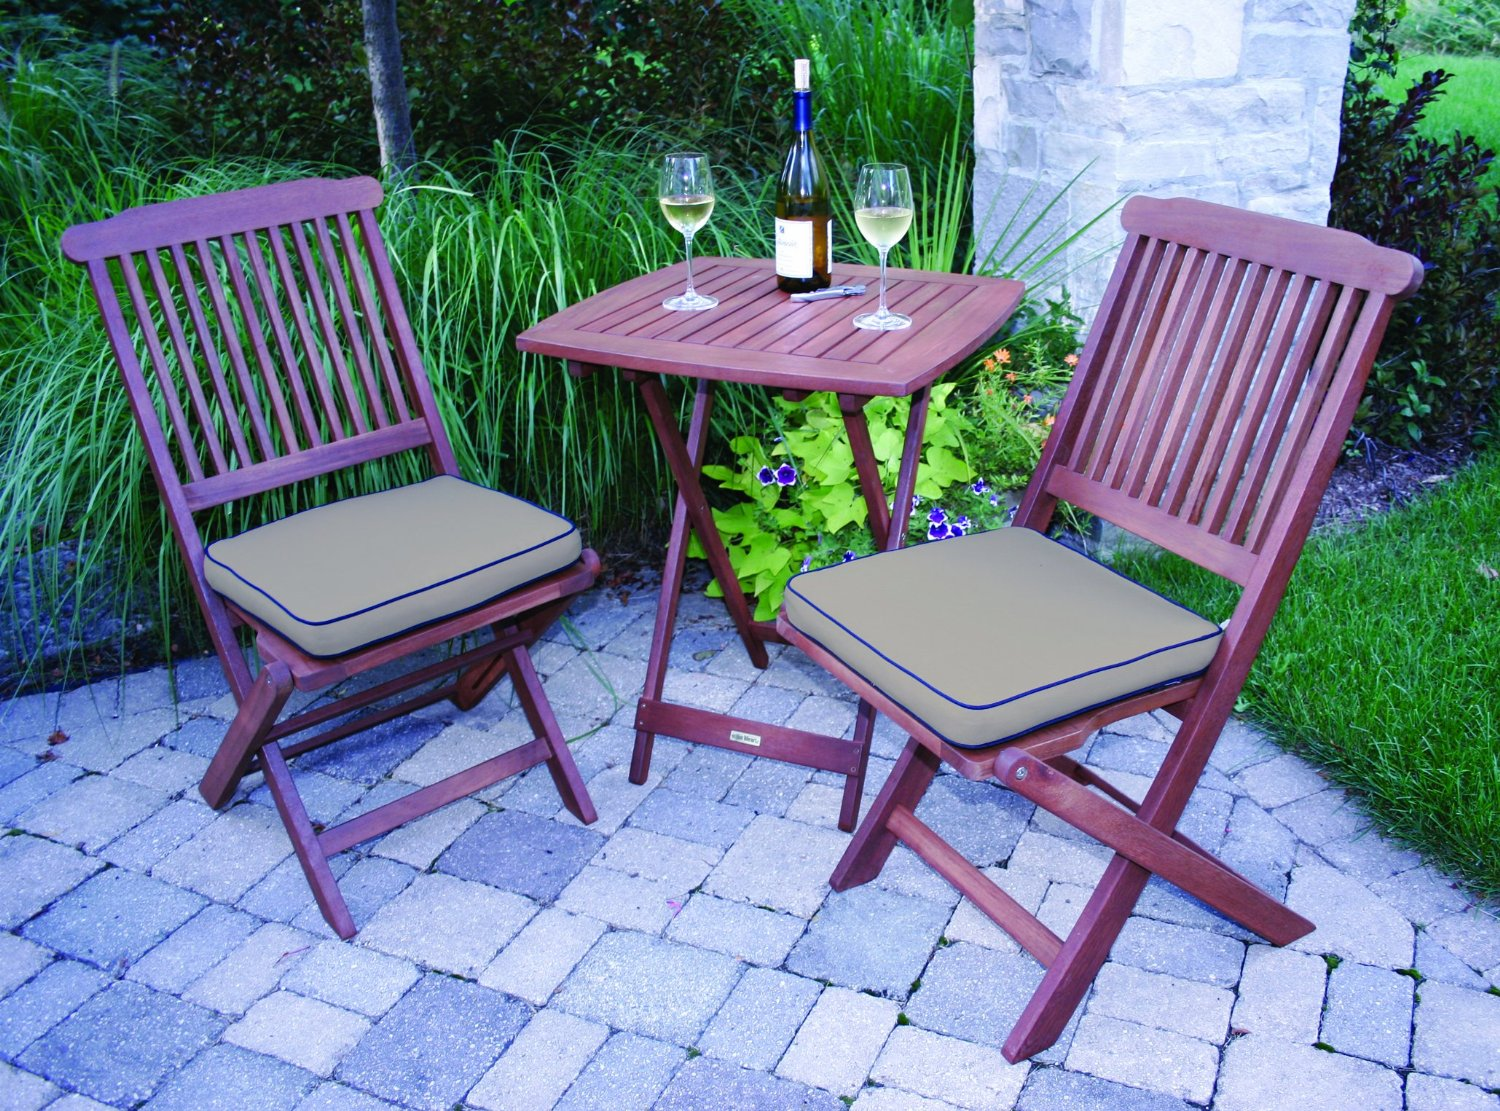 3 Piece Patio Furniture Sets Archives Best Patio Furniture Sets line